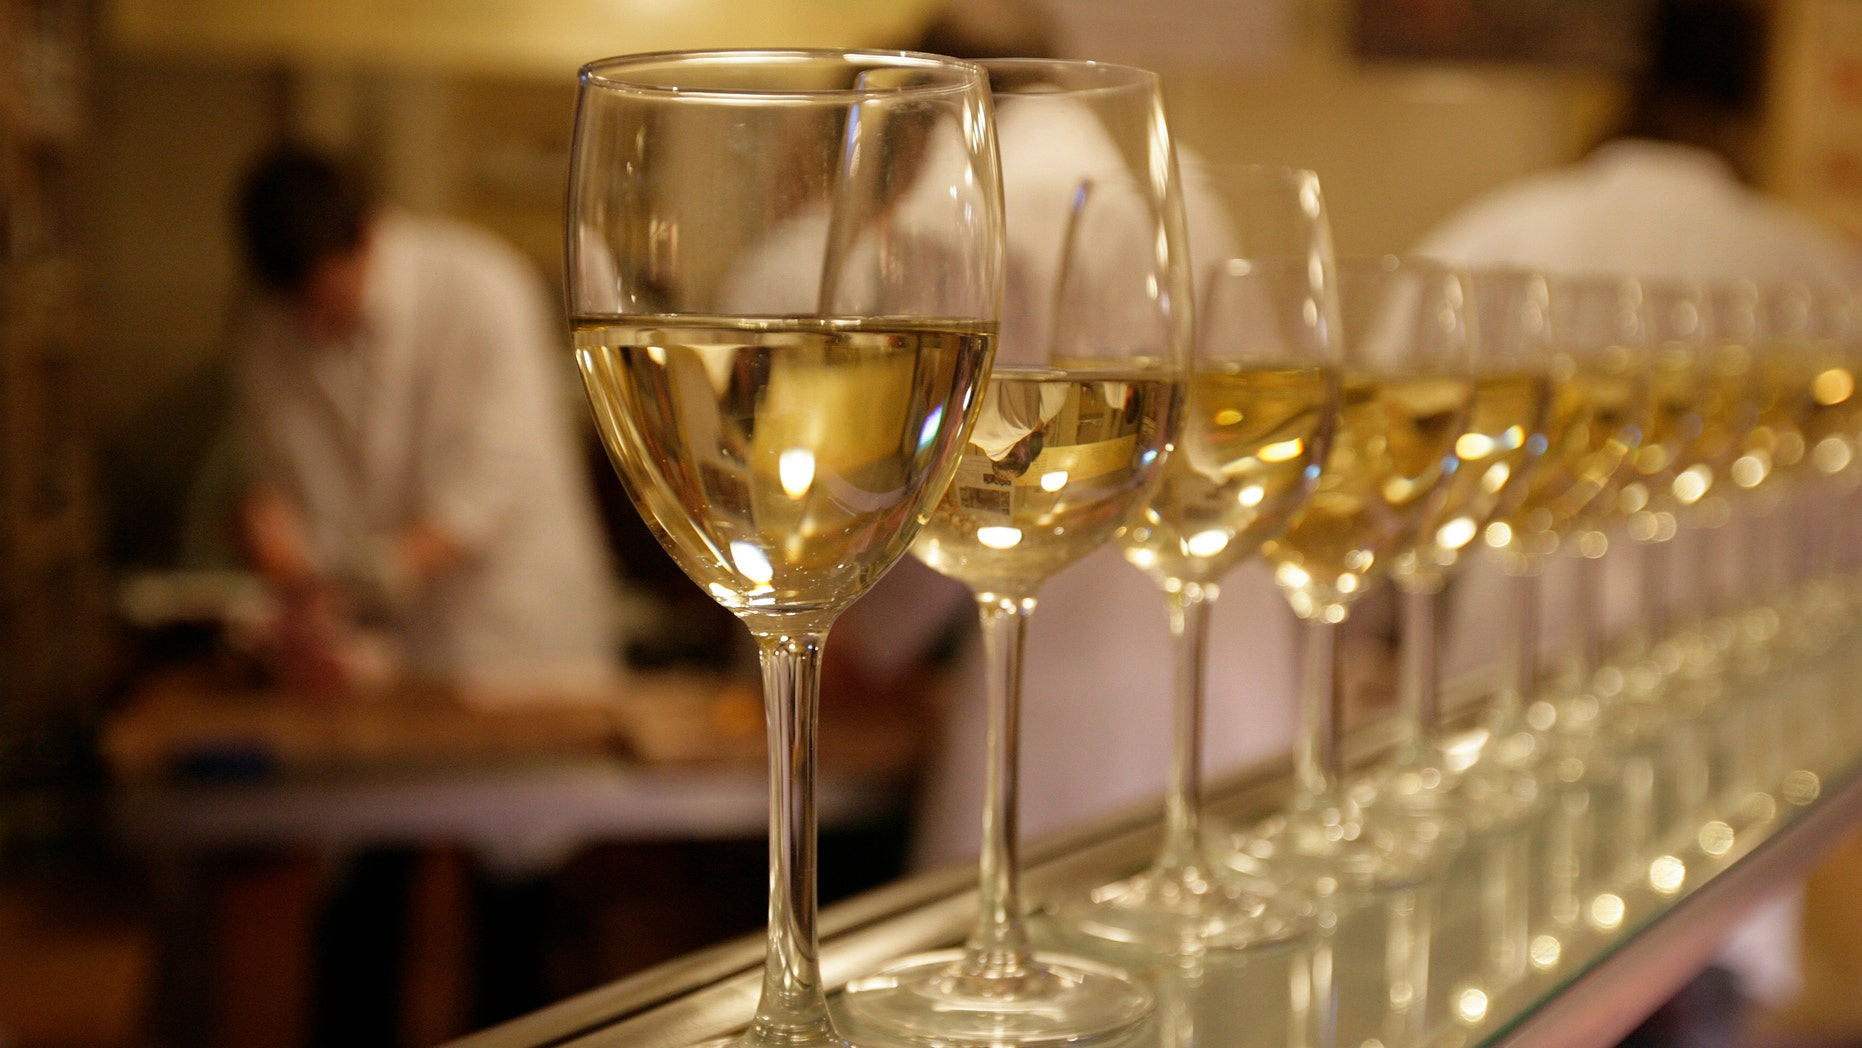 File photo - Glasses of white wine are lined up for students to drink at the end of their evening butchery class at the Ginger Pig butchery shop in central London August 25, 2009. (REUTERS/Simon Newman)